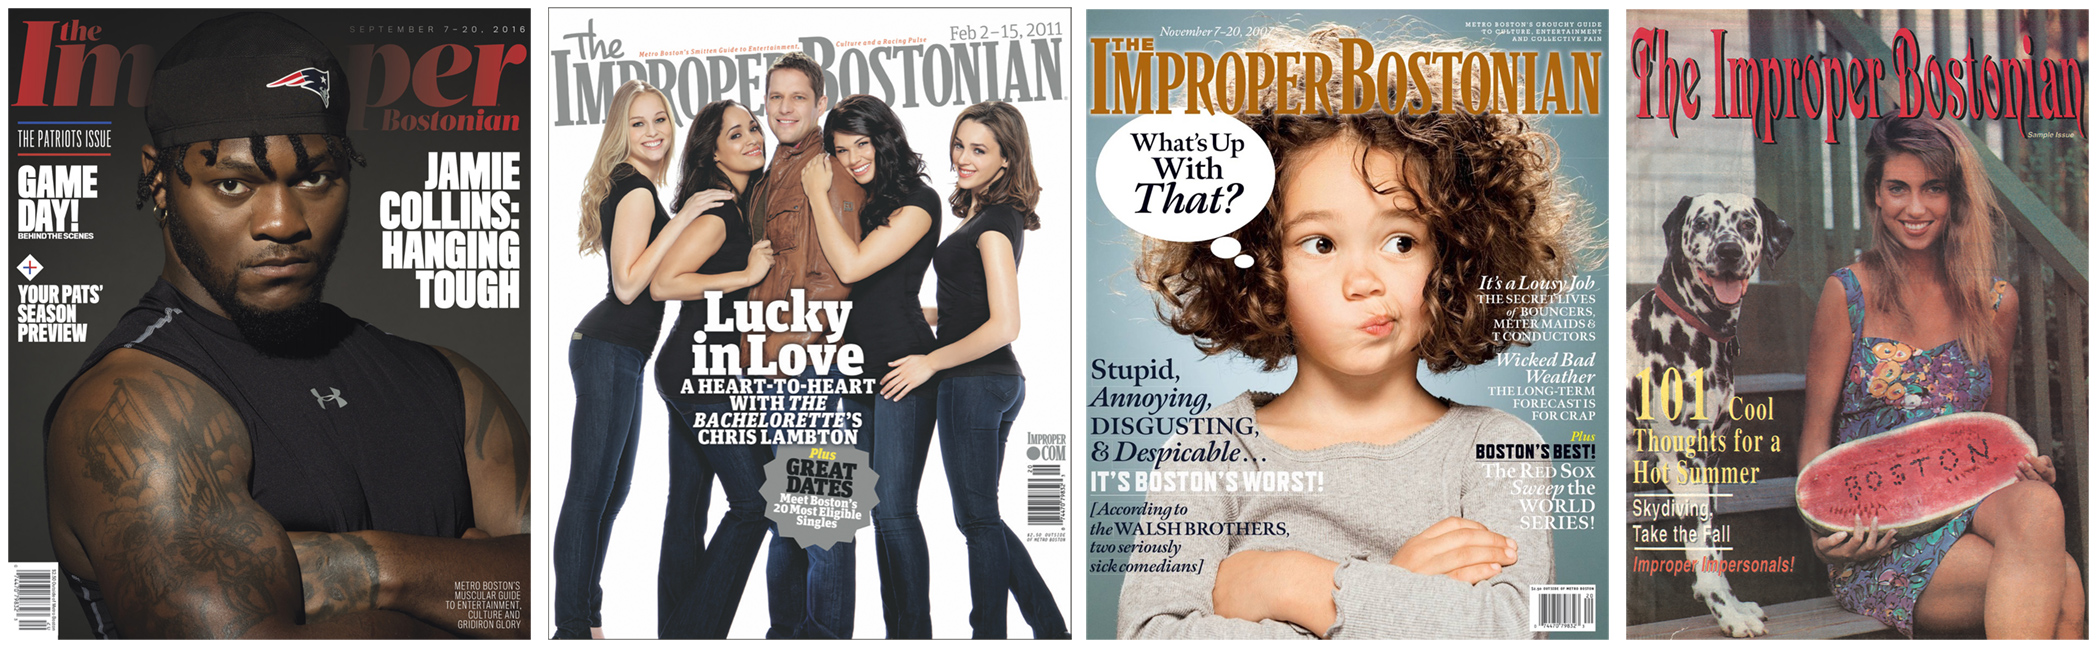 Improper Bostonian covers through the years. From left, 2017, 2011, 2007, and one from the inaugural year, 1992.